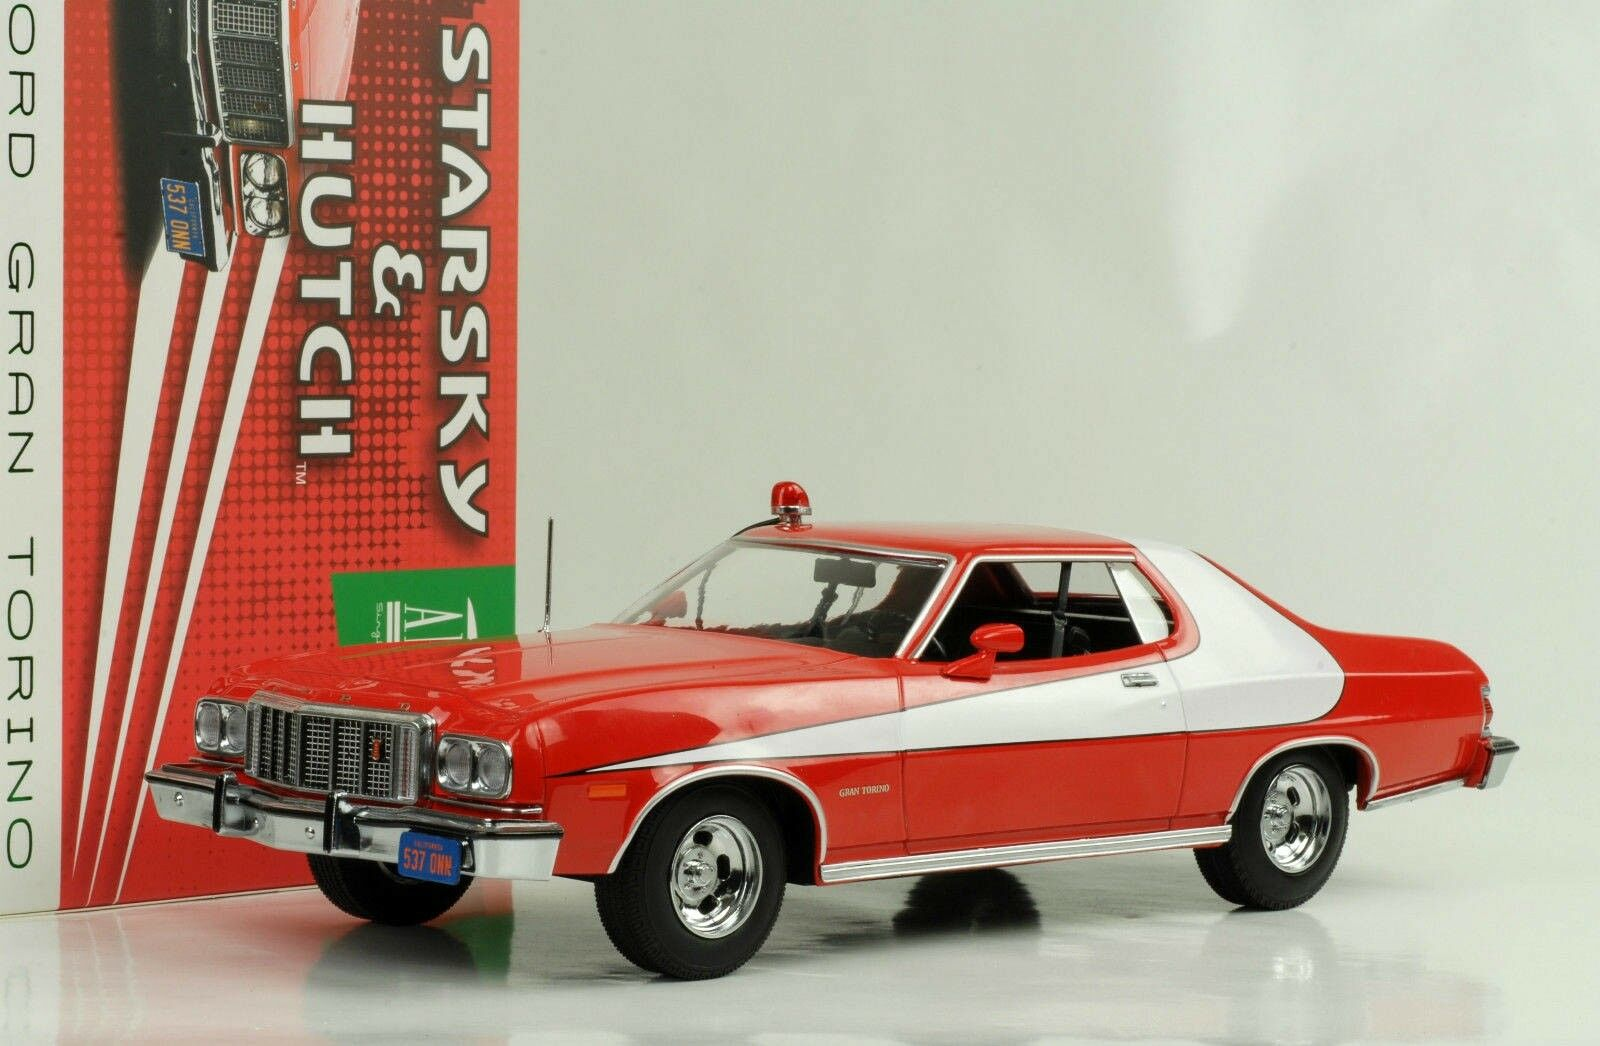 Ford Grand Torino 1976 Starsky Hutch Film Artisan 1:18 verdelight